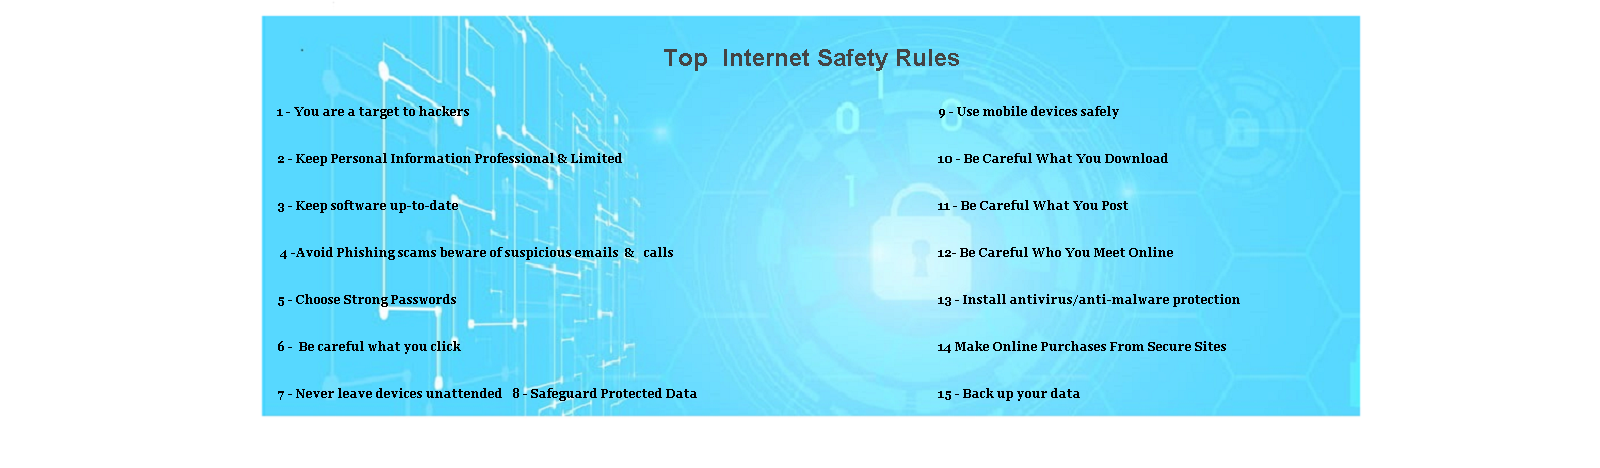 Top- Internet Safety Rules